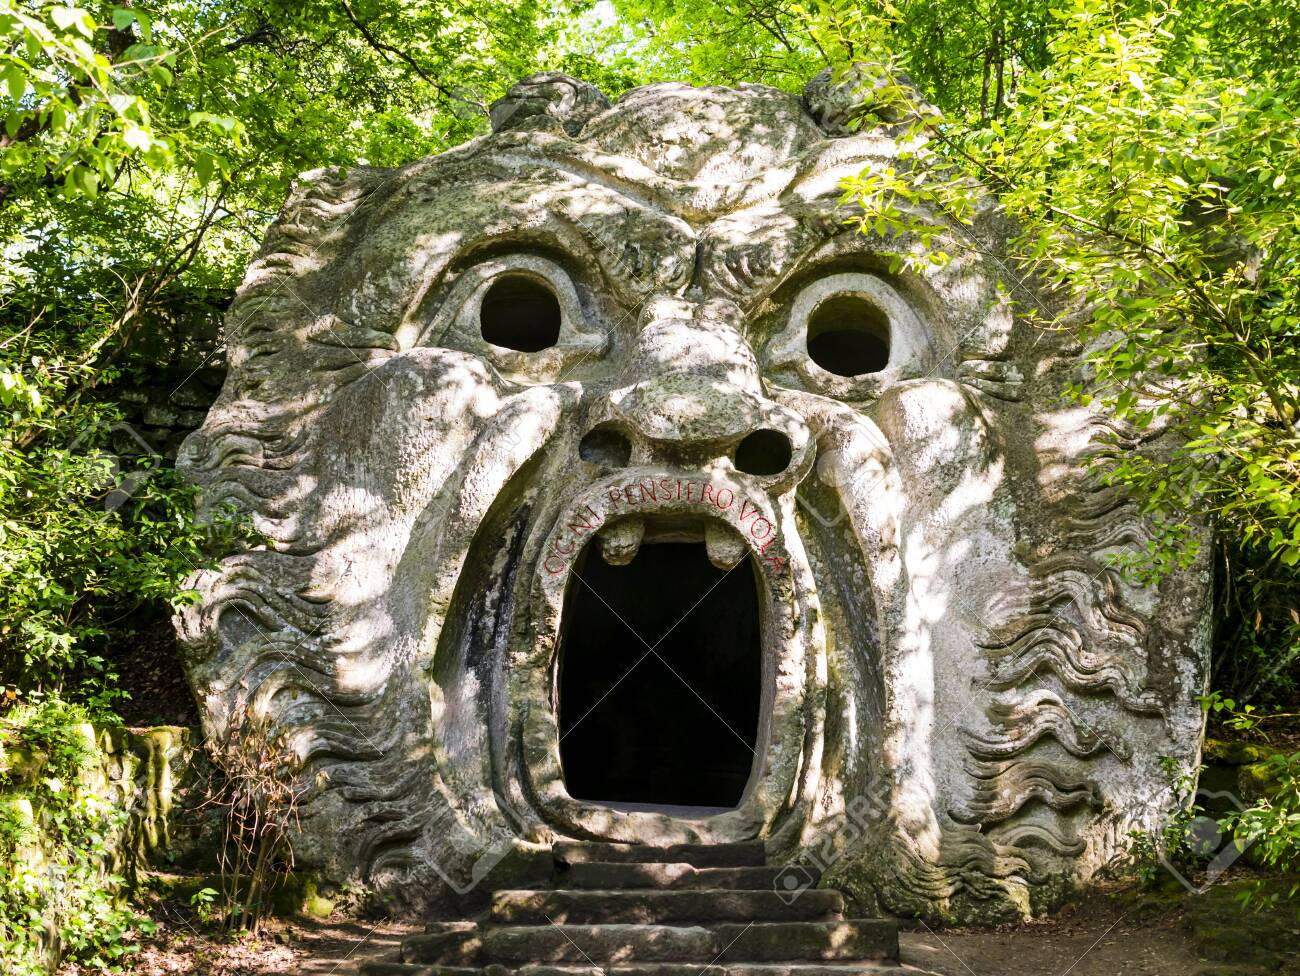 Stunning view of Orcus Mouth, a grotesque sculpture at famous Park of the Monsters, also named Sacred Grove, Bomarzo Gardens, province of Viterbo, Lazio, Italy - 150525780